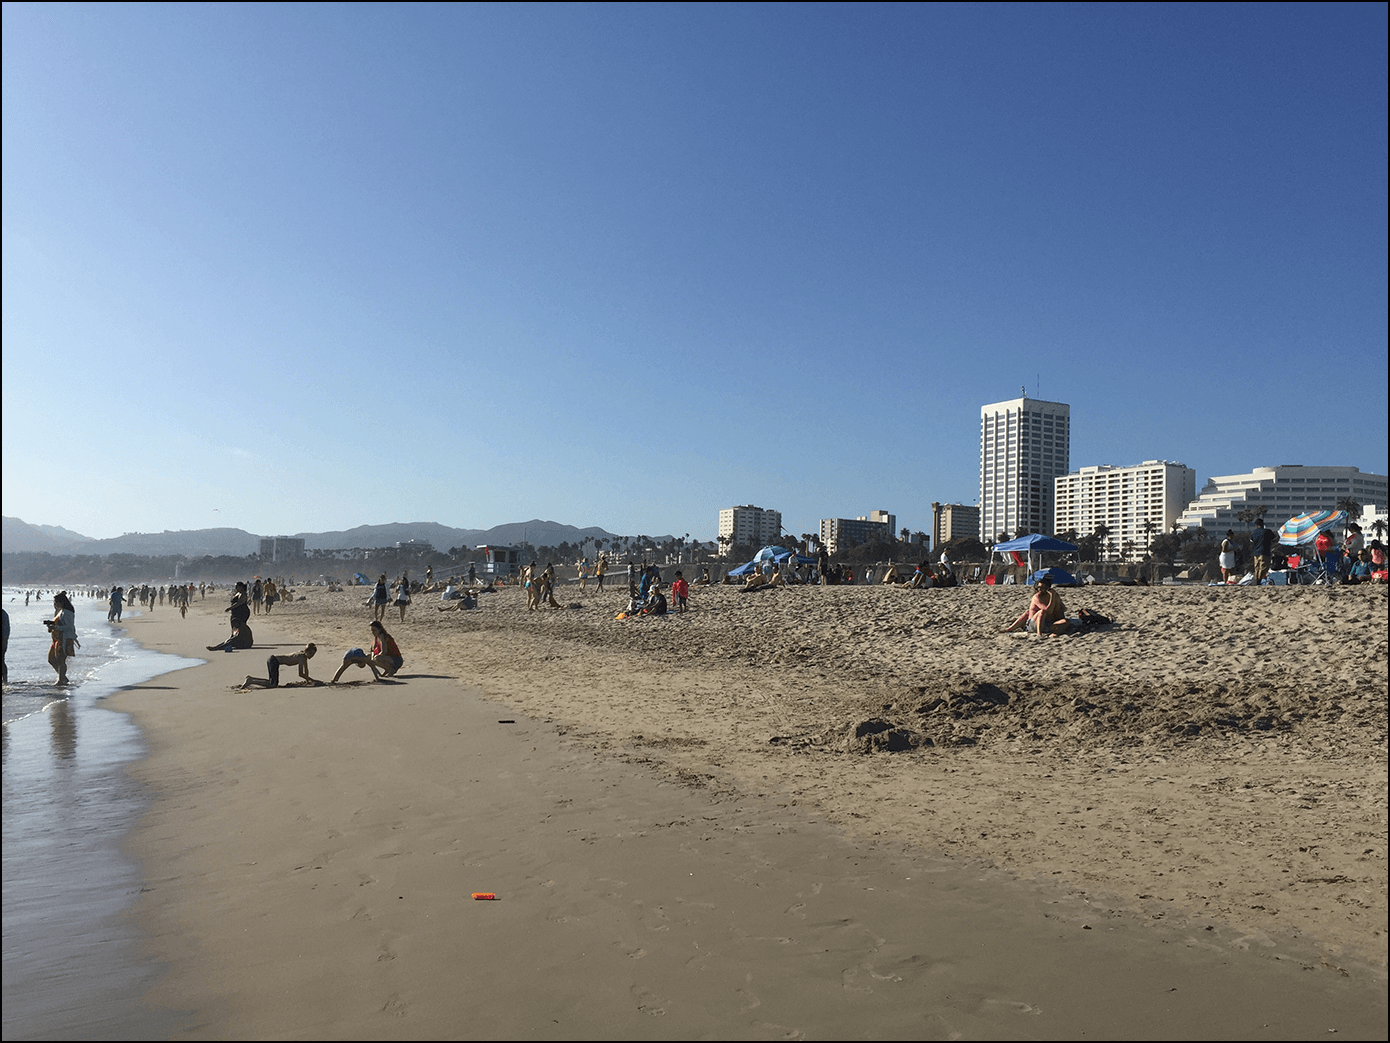 Der Strand Santa Monica Beach in Los Angeles